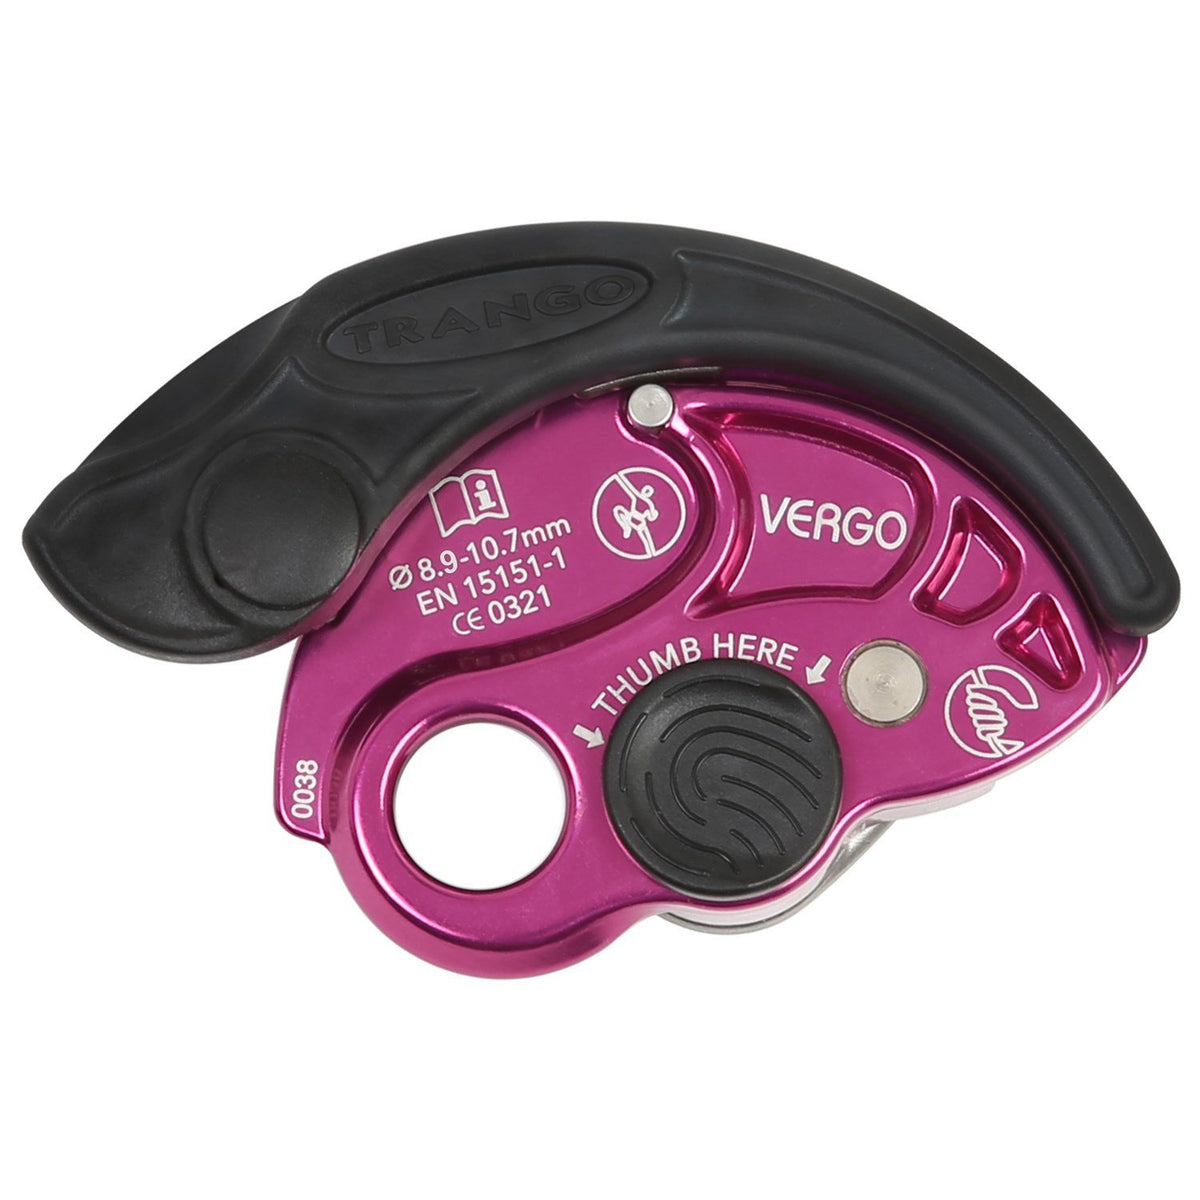 Trango Vergo climbing belay device, in purple colour